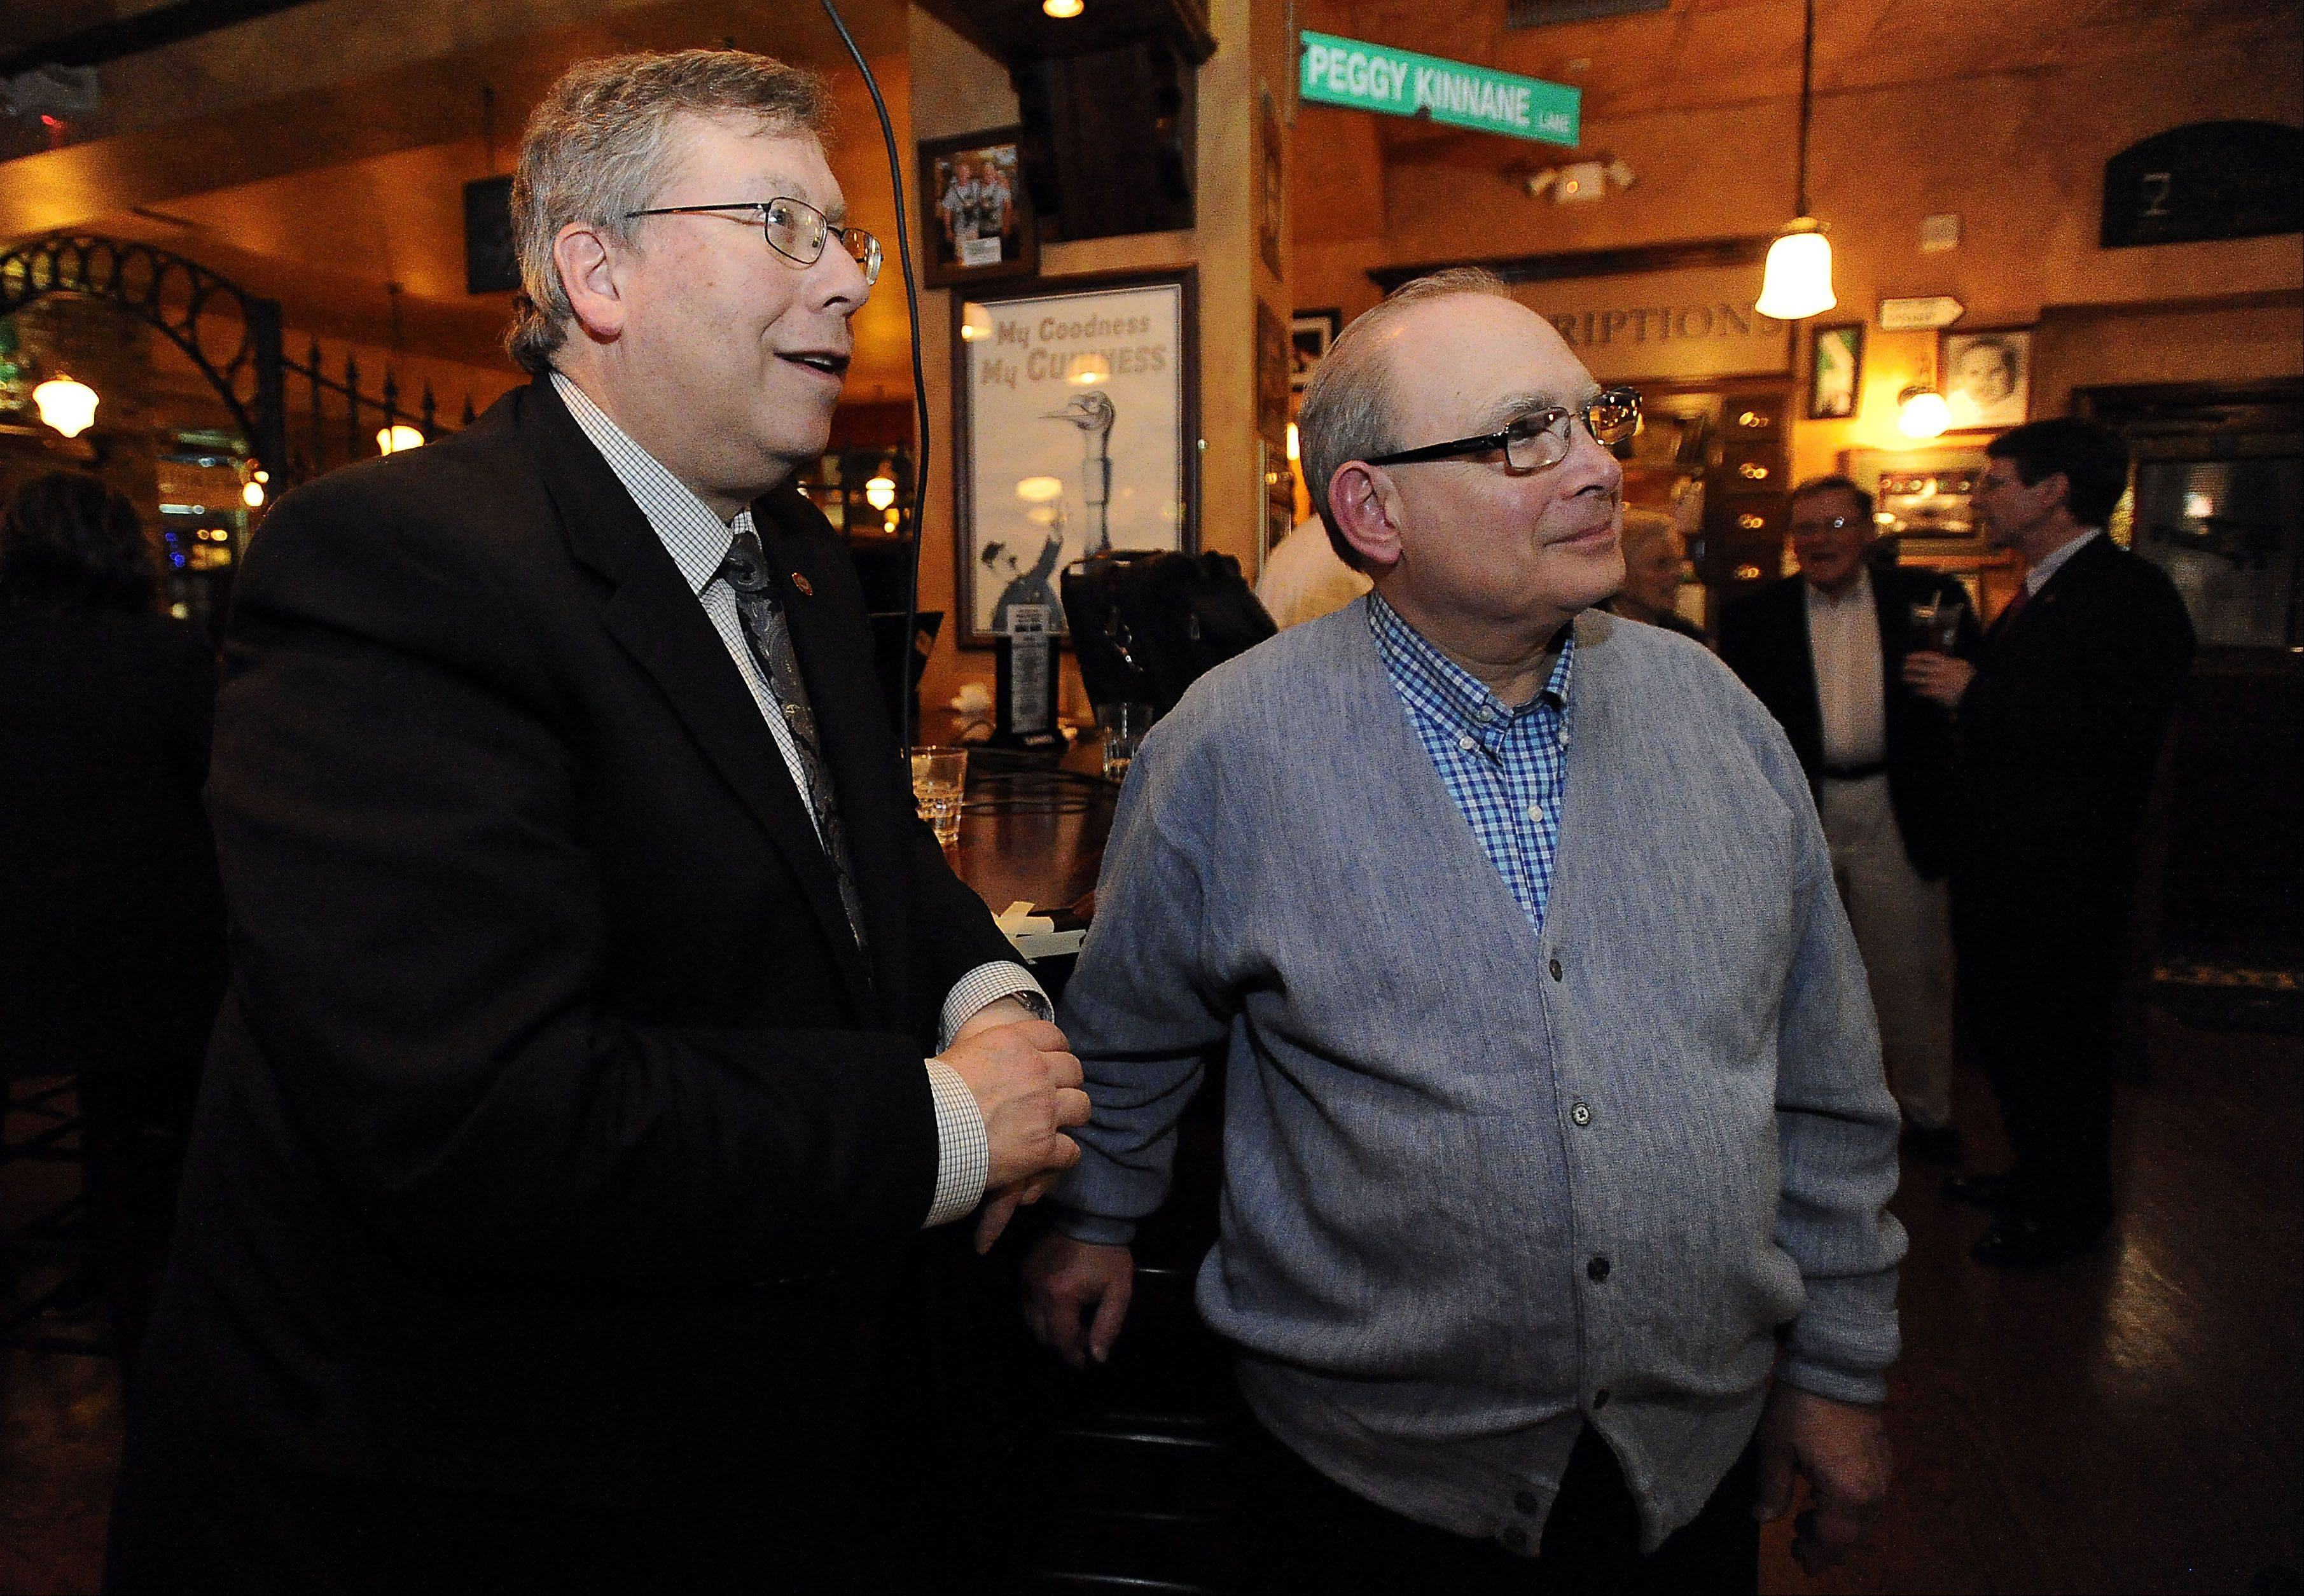 Bert Rosenberg, left, and Norm Breyer watch the polls late into the evening on April 9.